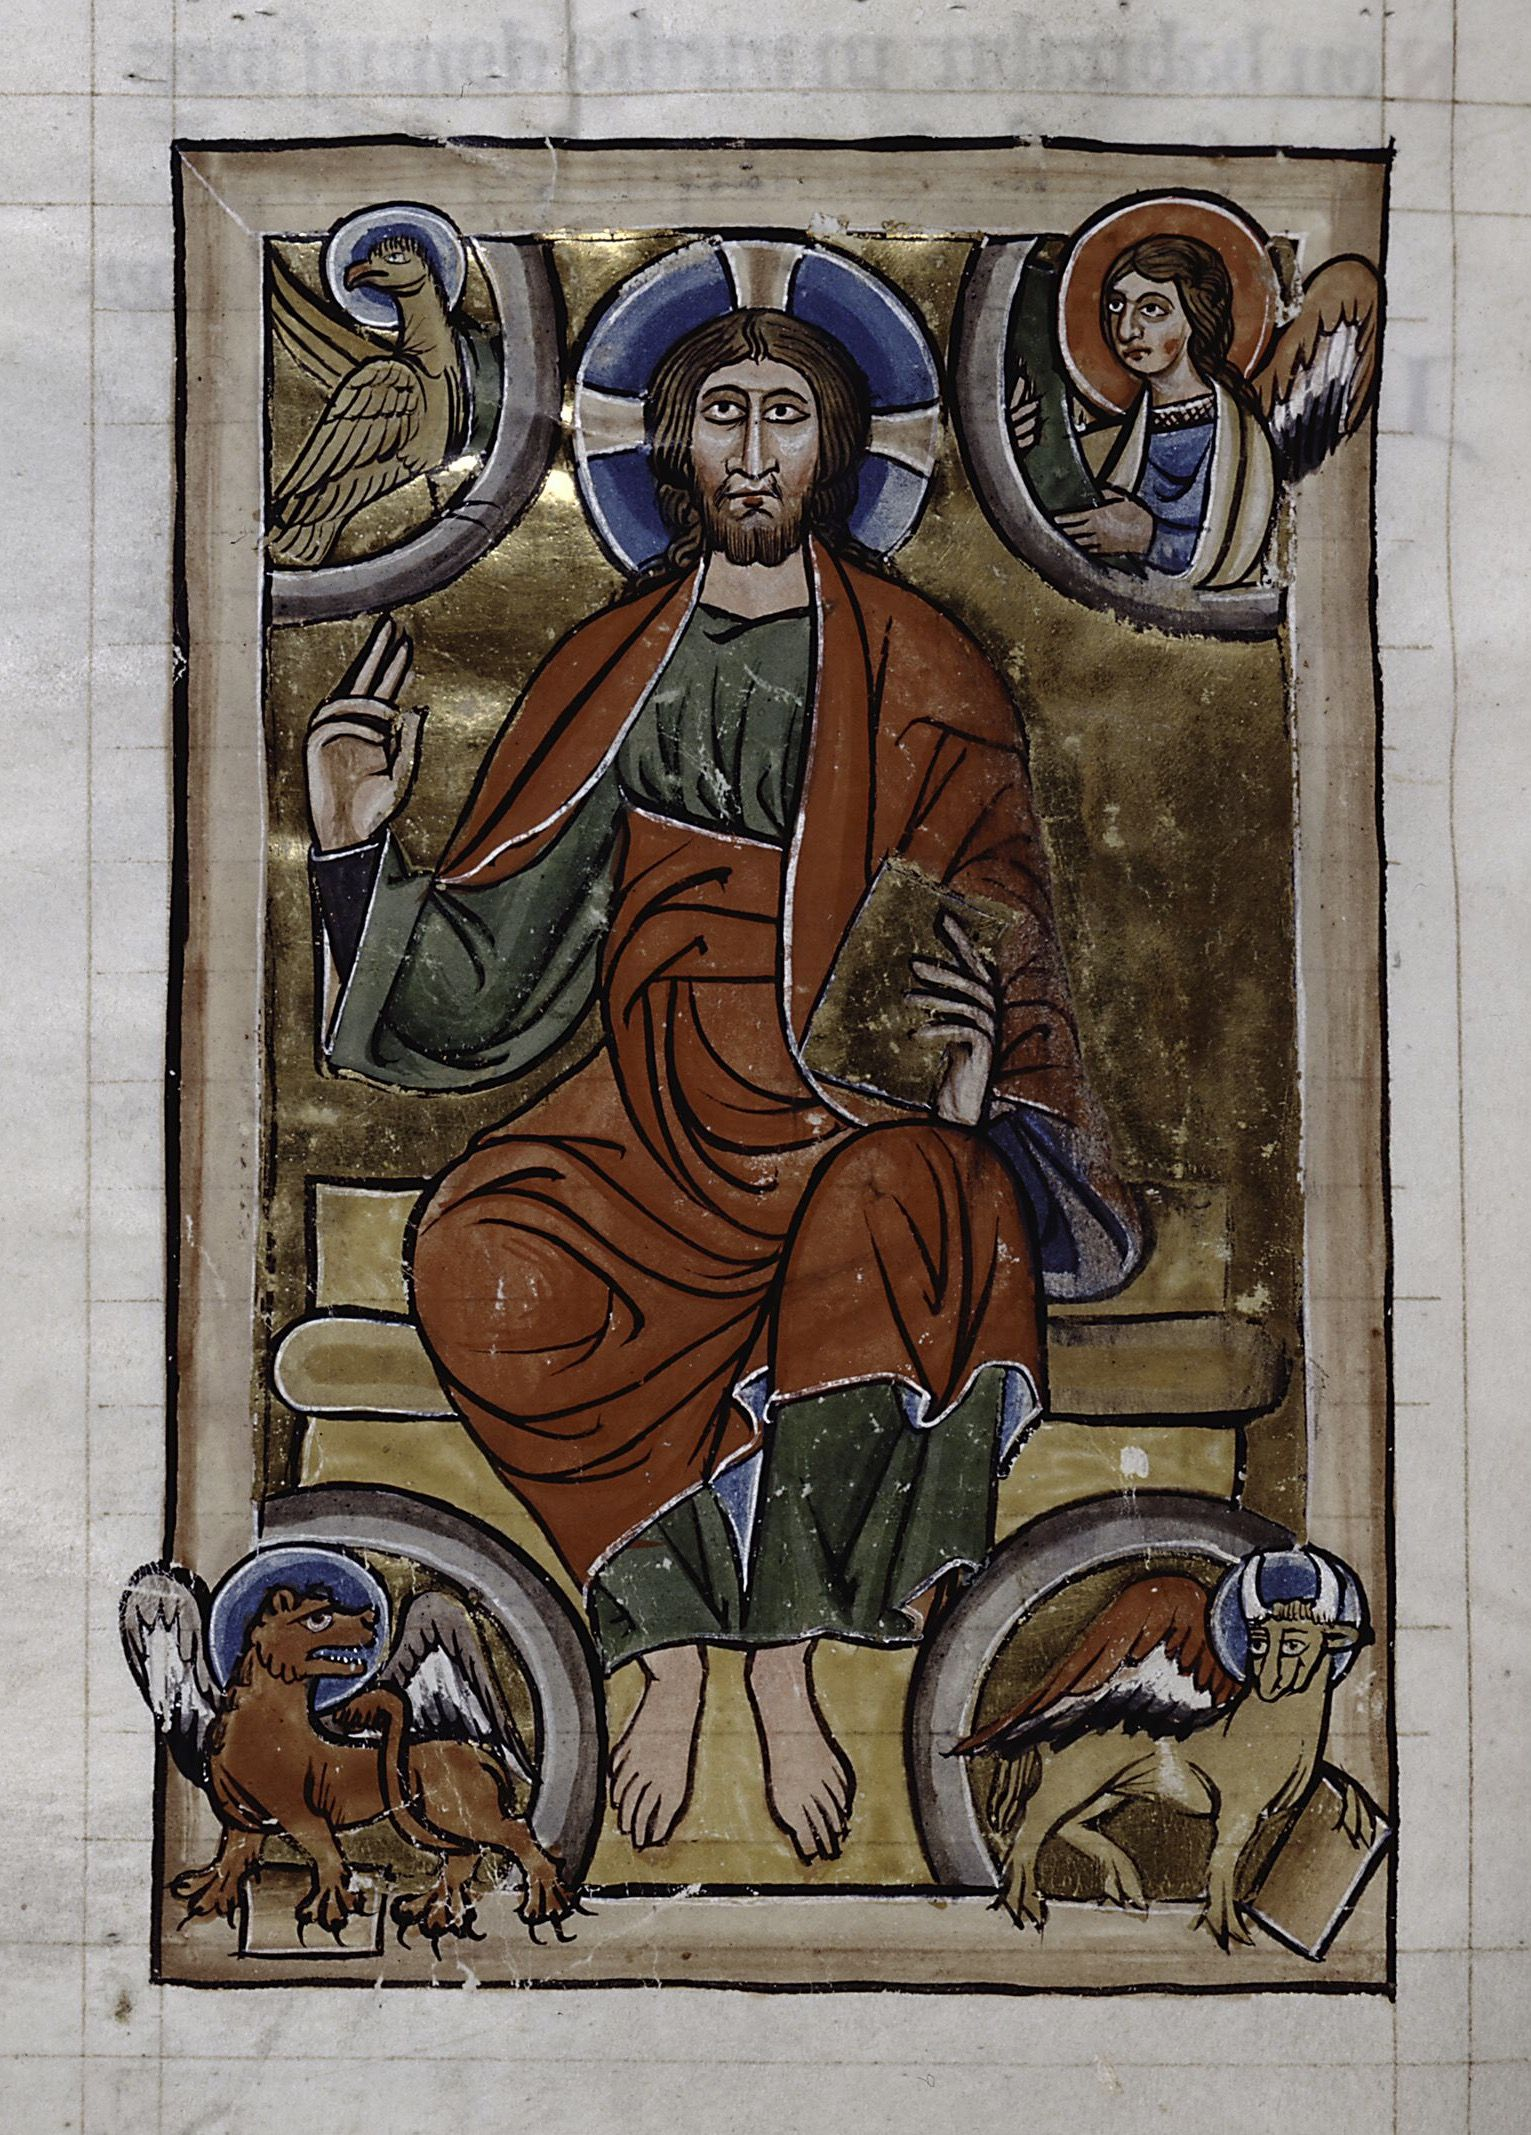 Christ in majesty, four evangelists, unfinished.